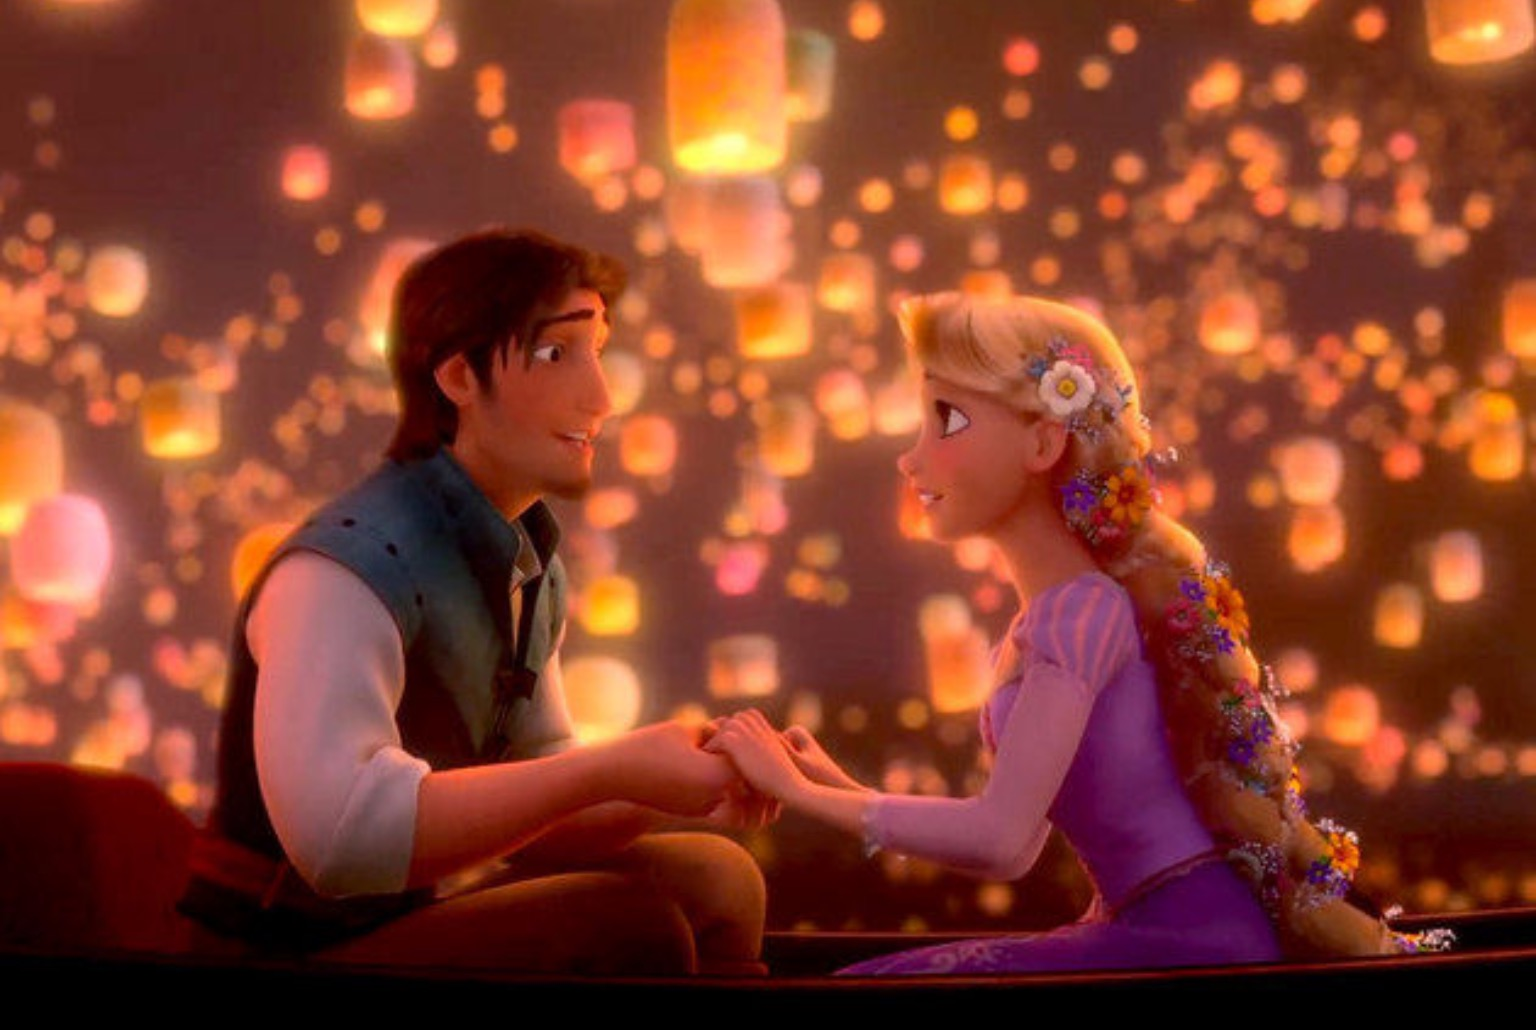 Wallpaper Girl On Boat 1440p Rapunzel S Lantern Festival September 23 Ship Saves